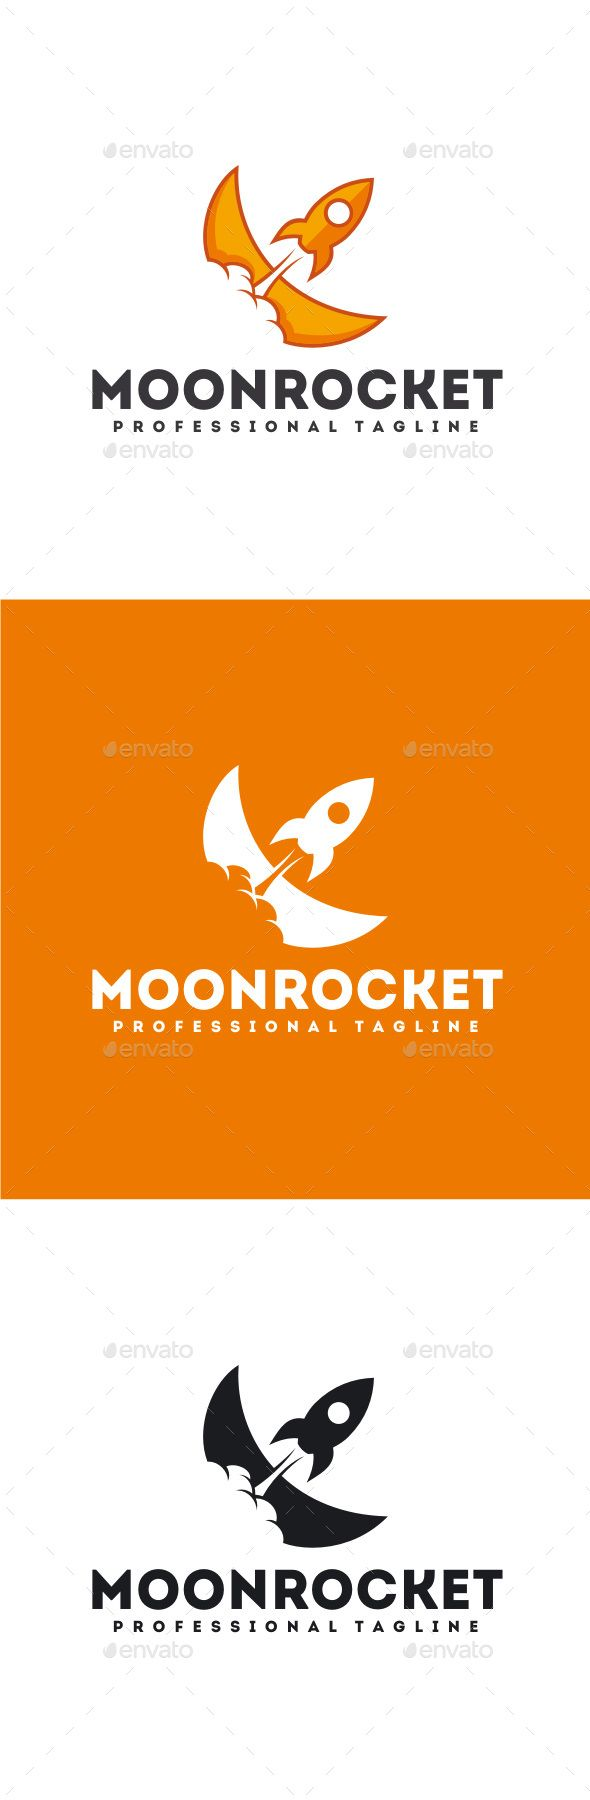 Moon Rocket Logo by yopie Logo Template : 100% Vector 100% Customizable High Quality Editable Text Font Name and Link for download are provided in Readme fi